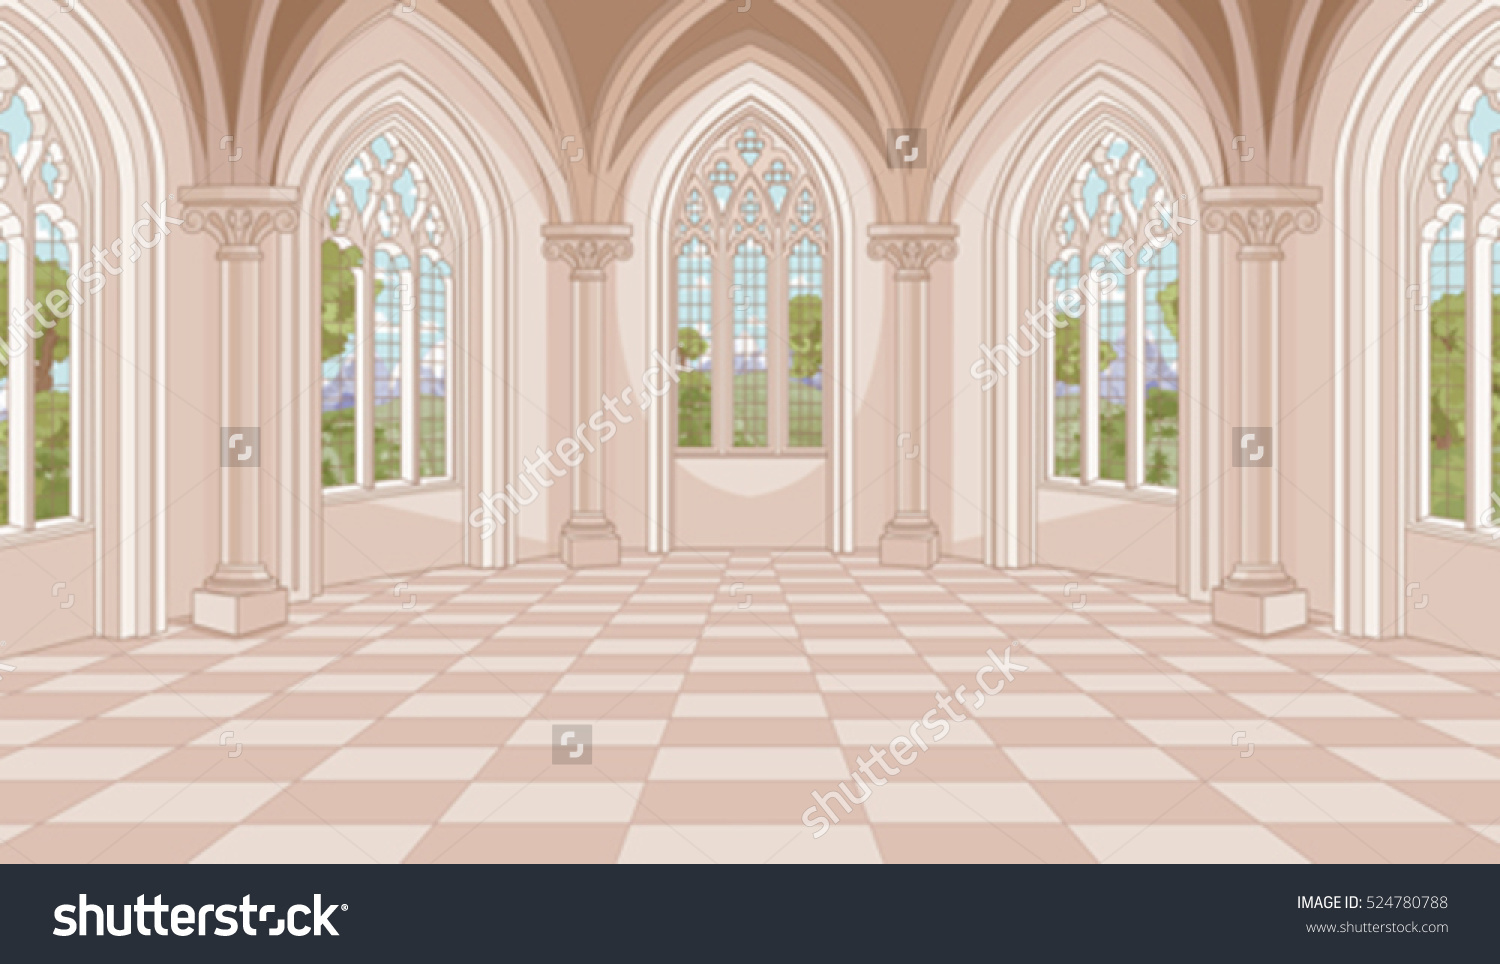 Illustration Medieval Castle Hall Stock Vector 524780788.